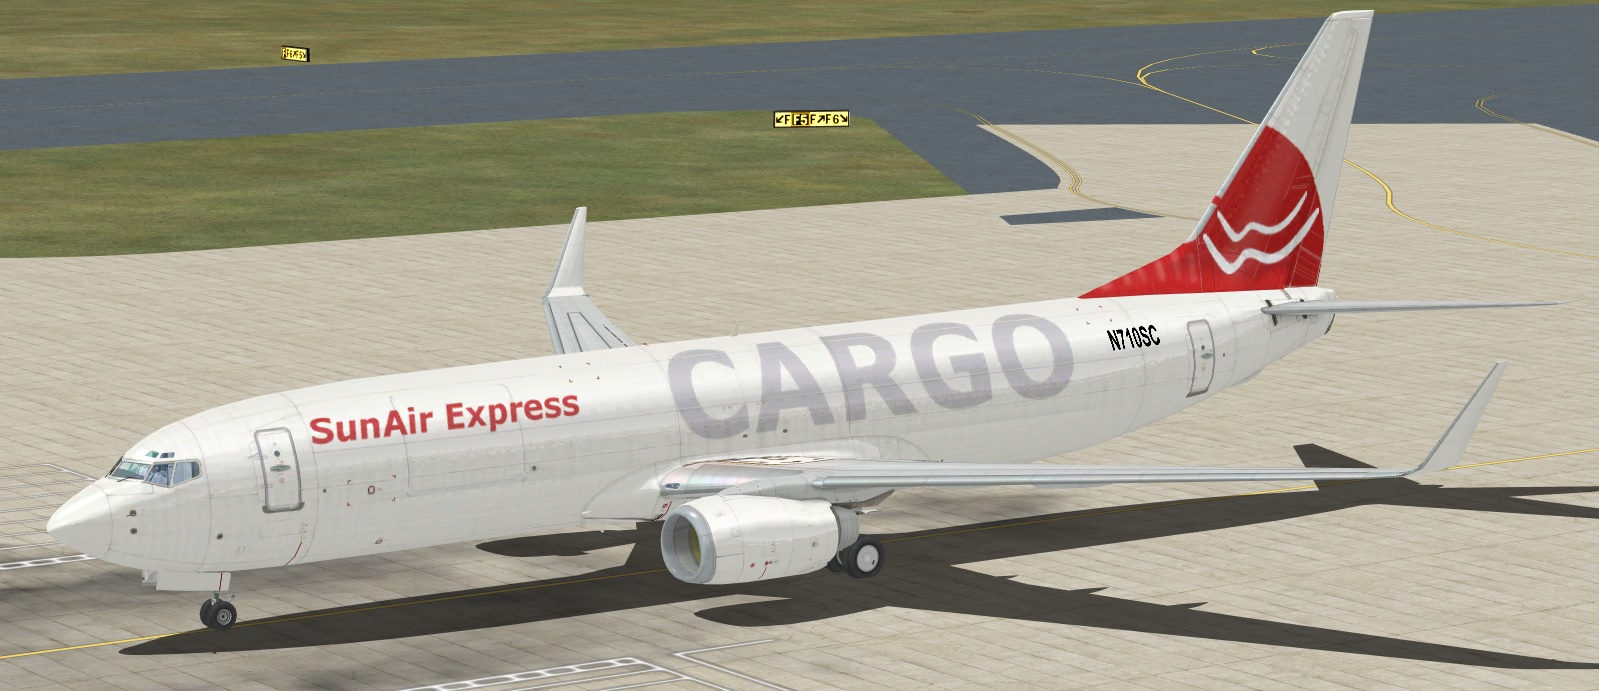 SunAir Express Virtual Airlines - File Library